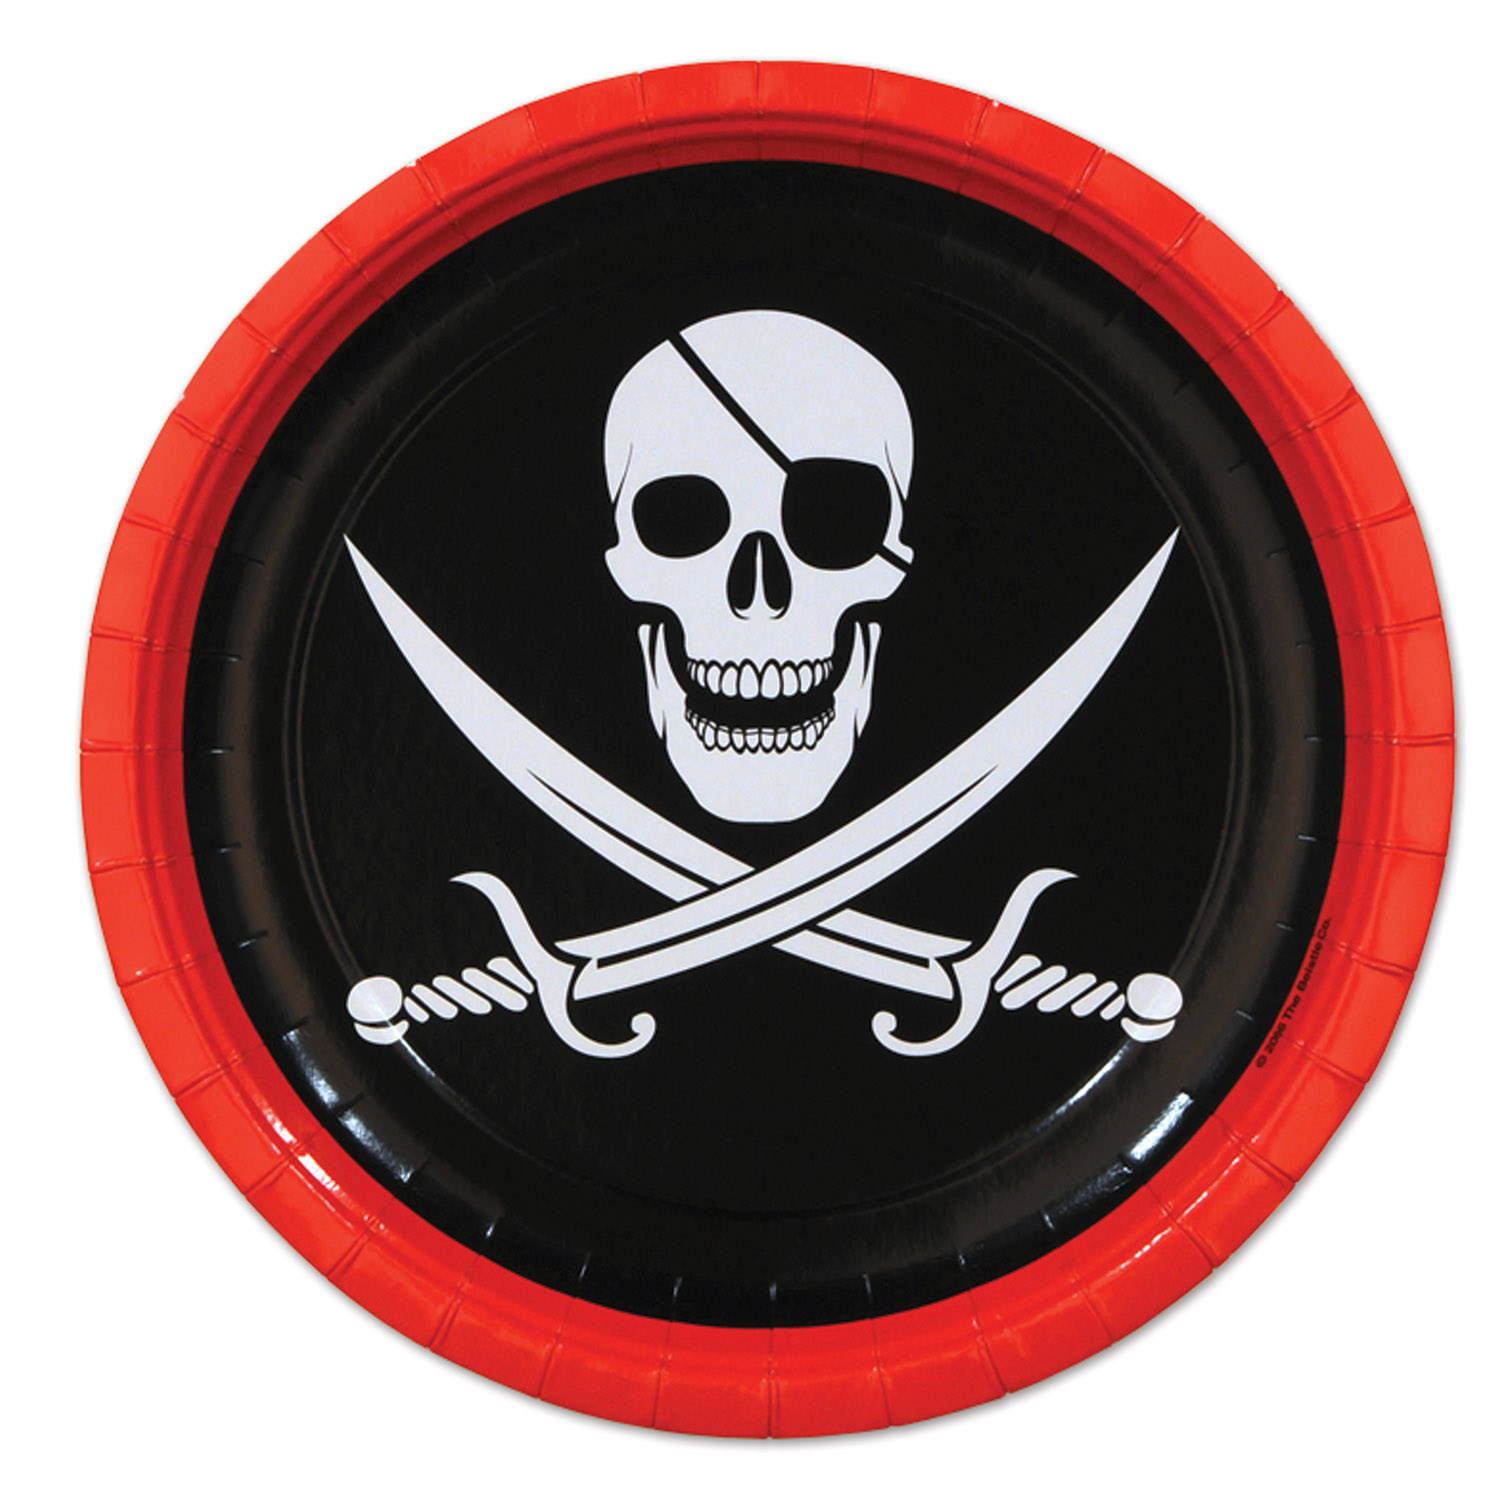 Pirate Plates (Pack of 96) Pirate Party, Table Decor, Tableware, Pirate Ideas, Wholesale party supplies, Cheap plates, Pirate Plates, Pirate dinnerware, Inexpensive party supplies, Birthday ideas